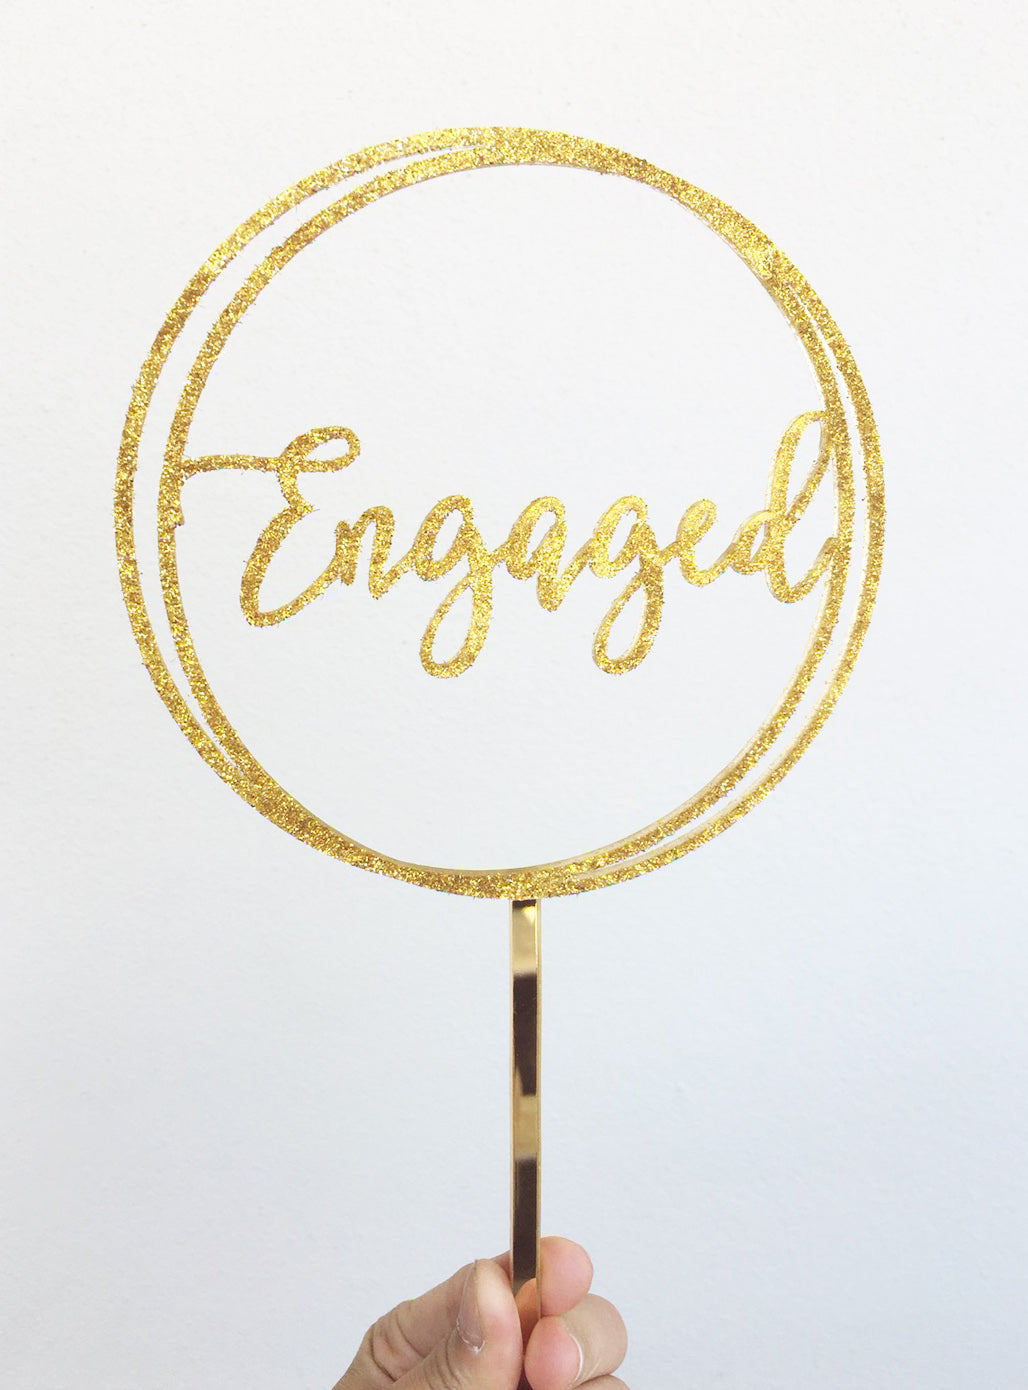 Engaged Circle Engagement Acrylic Cake Topper